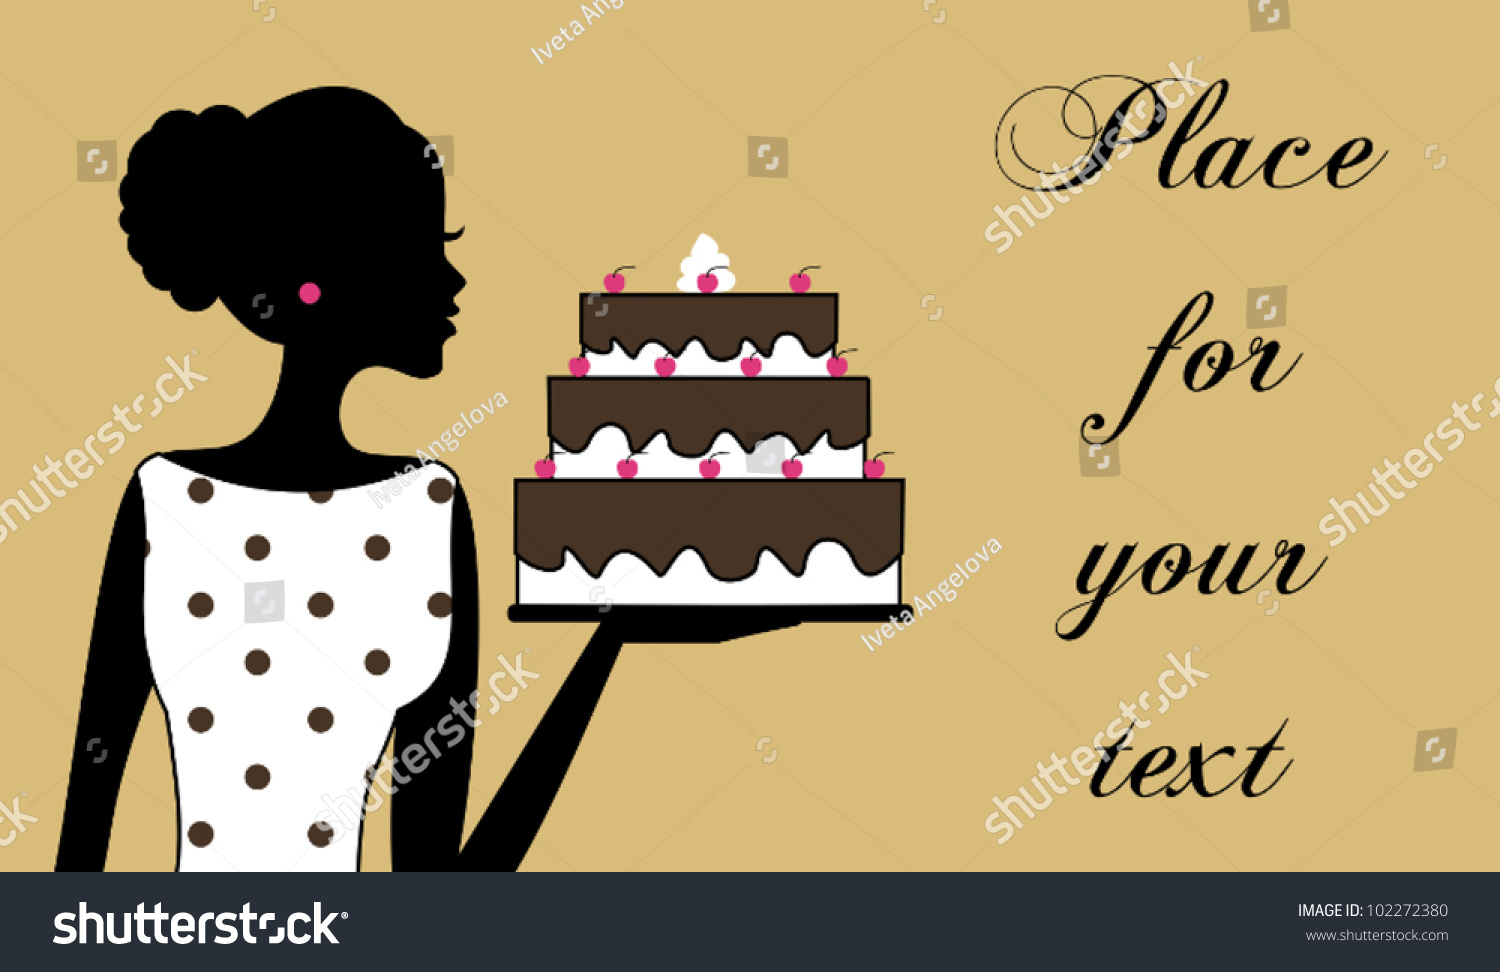 Illustration Of A Woman Holding A Cake. Business Card/Recipe Card Template.